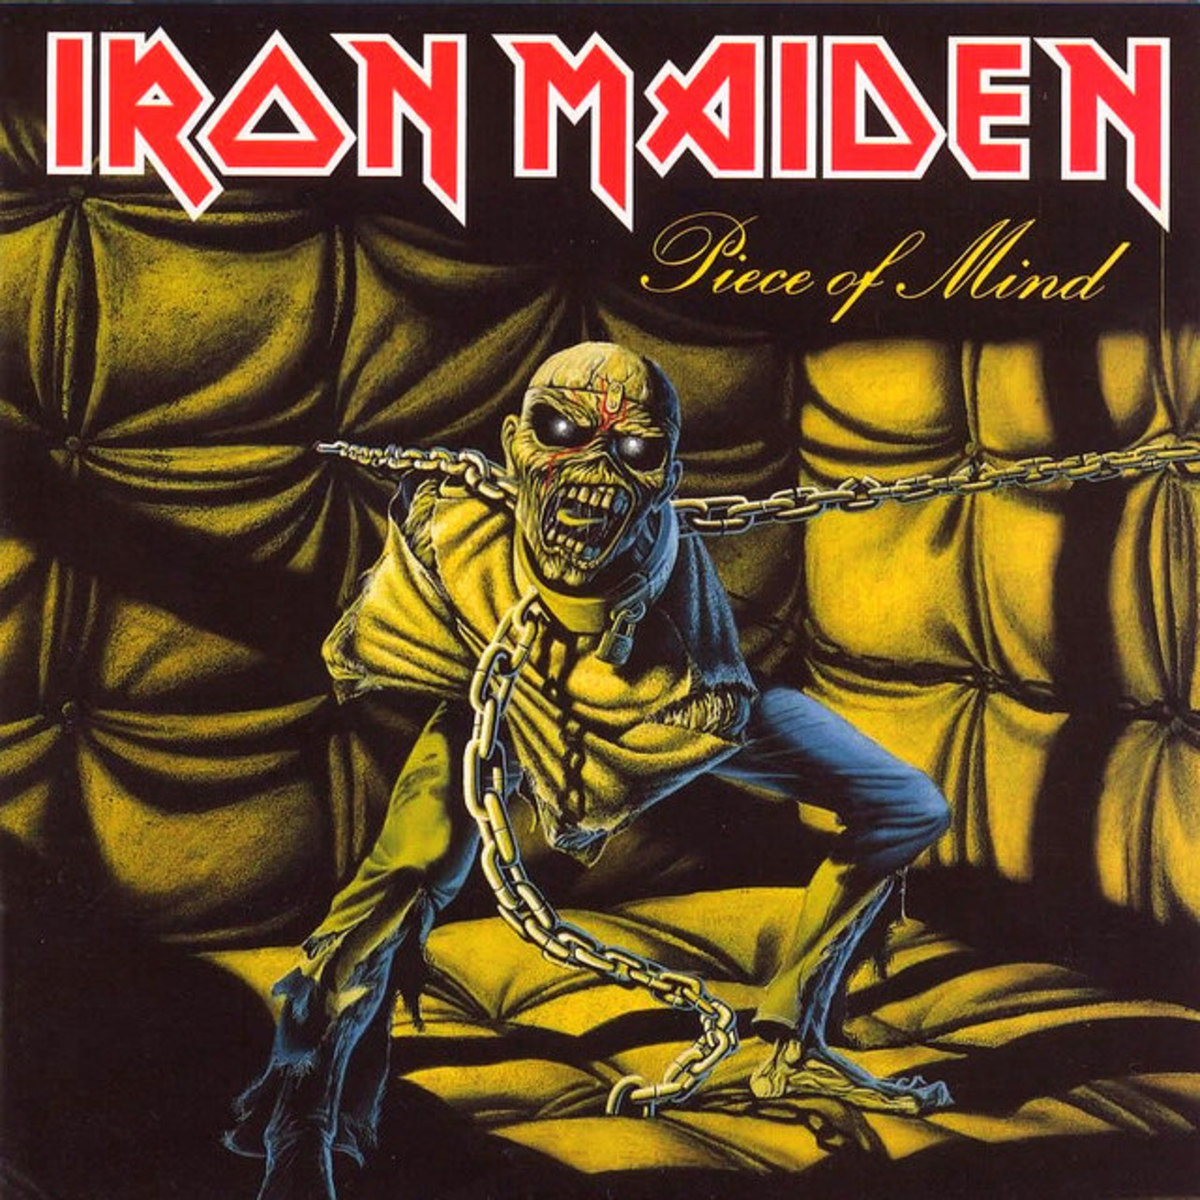 "Iron Maiden ""Piece of Mind"" Capitol Records ST-12274 12"" LP Vinyl Record U.S. Pressing (1983) Album Cover Art by Derek Riggs"